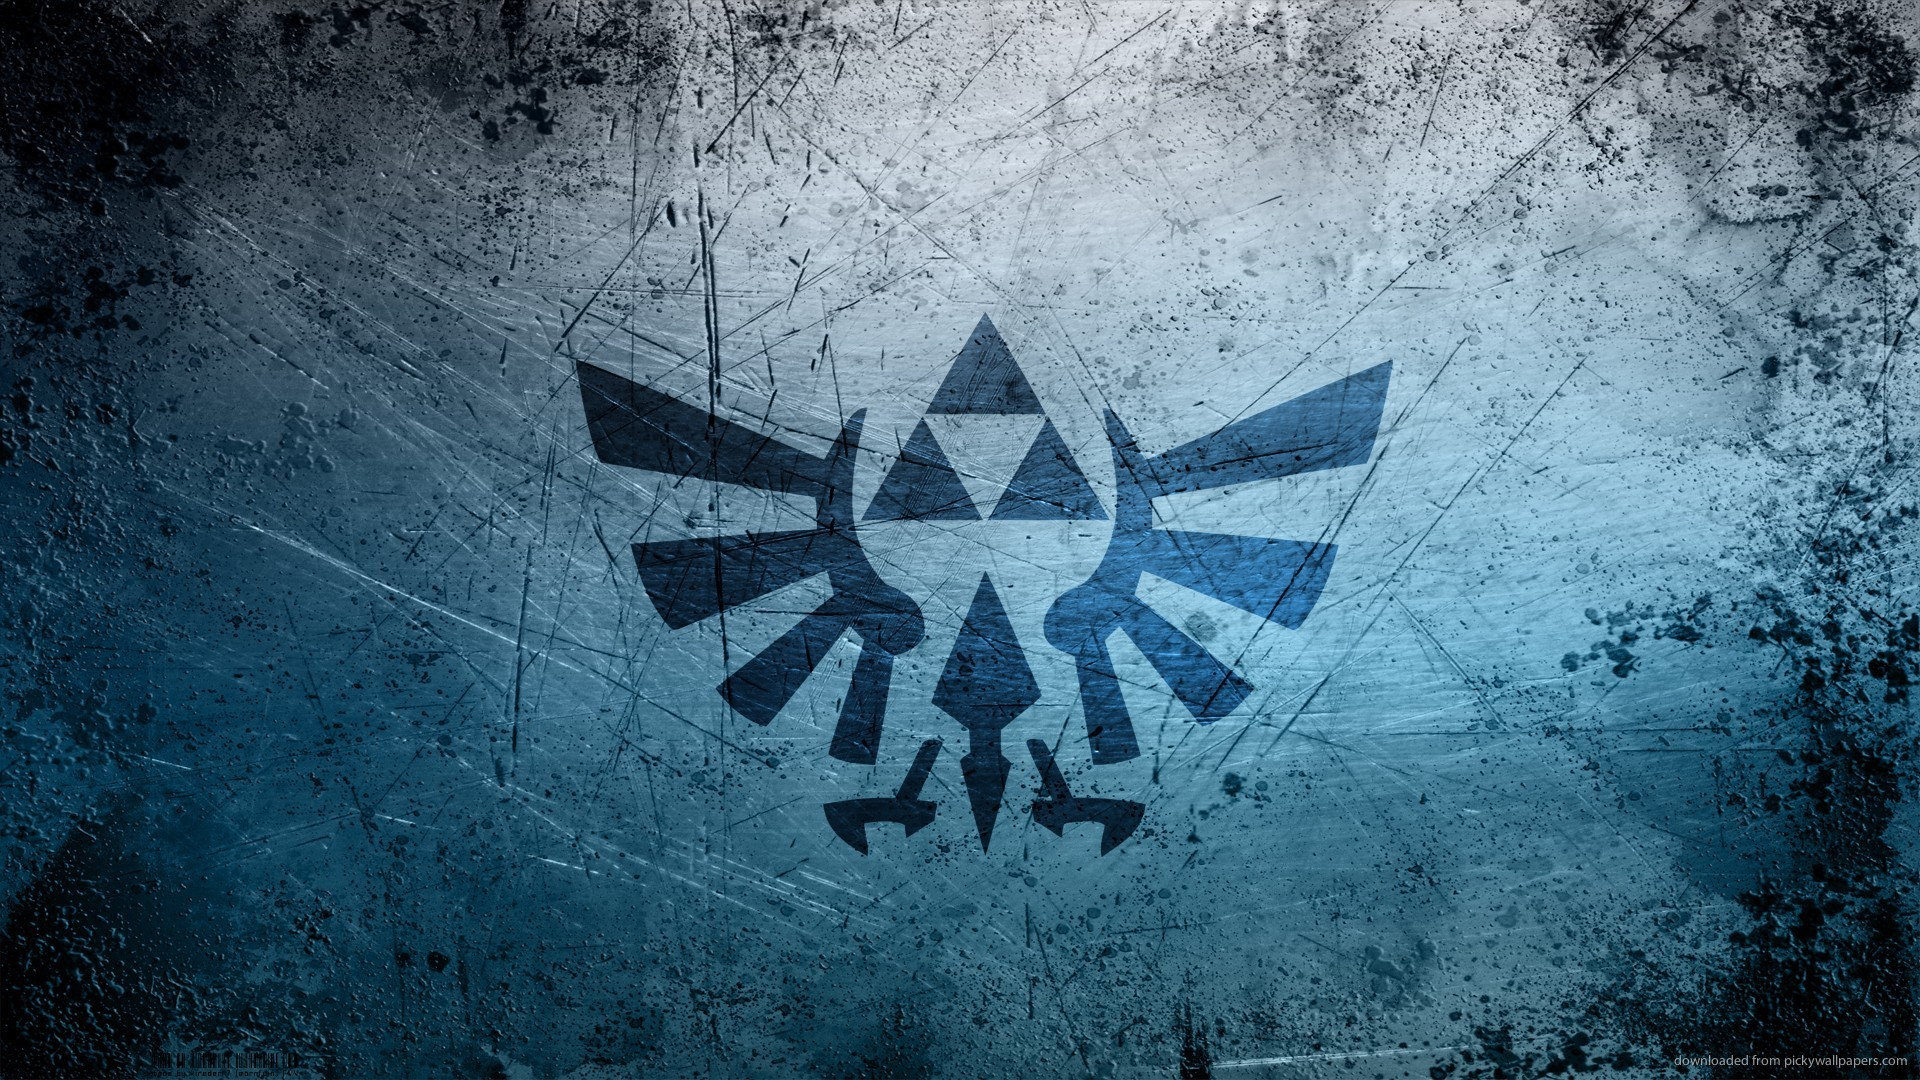 Download 1920x1080 The Legend Of Zelda Grunge Logo Wallpaper 1920x1080